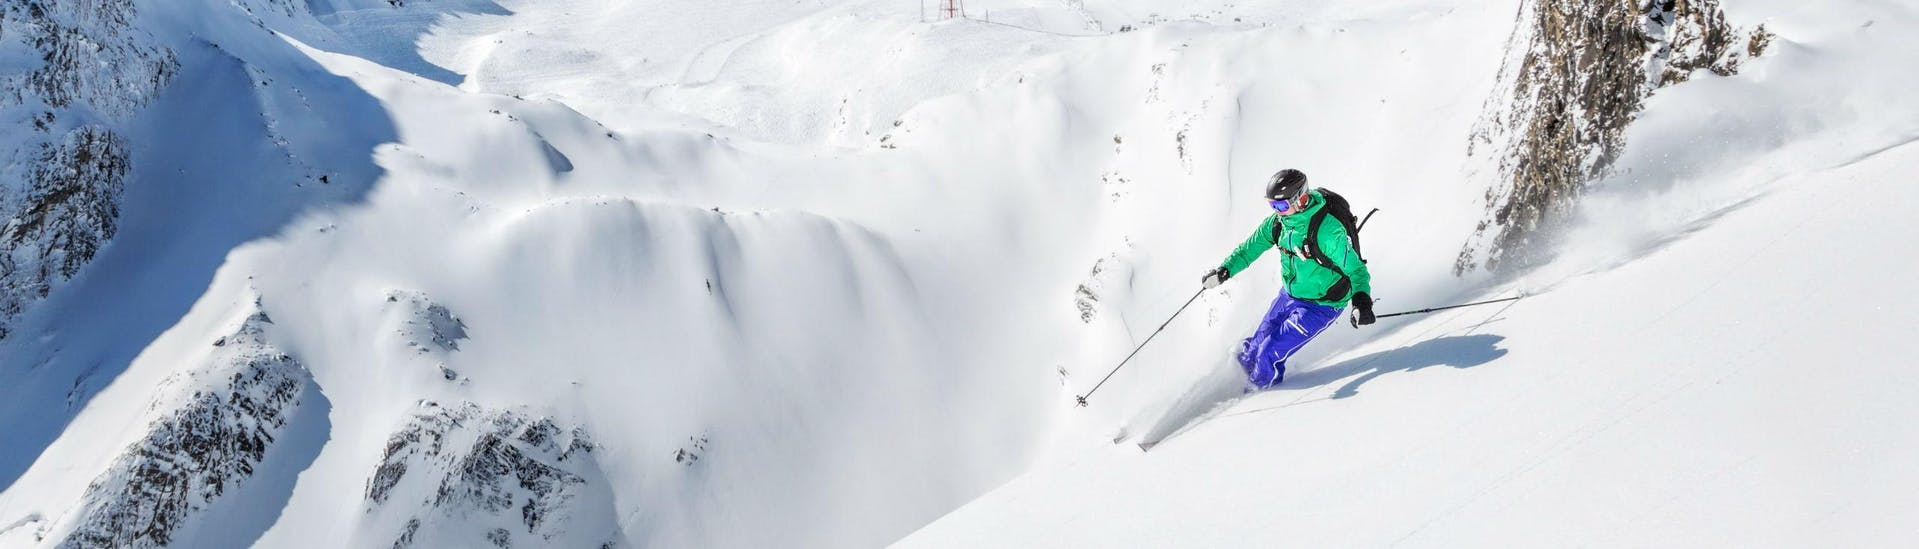 A skier is riding through some fresh powder snow in the Austrian ski resort of Kaprun, where beginners as well as advanced skiers can book ski lessons with the local ski schools.